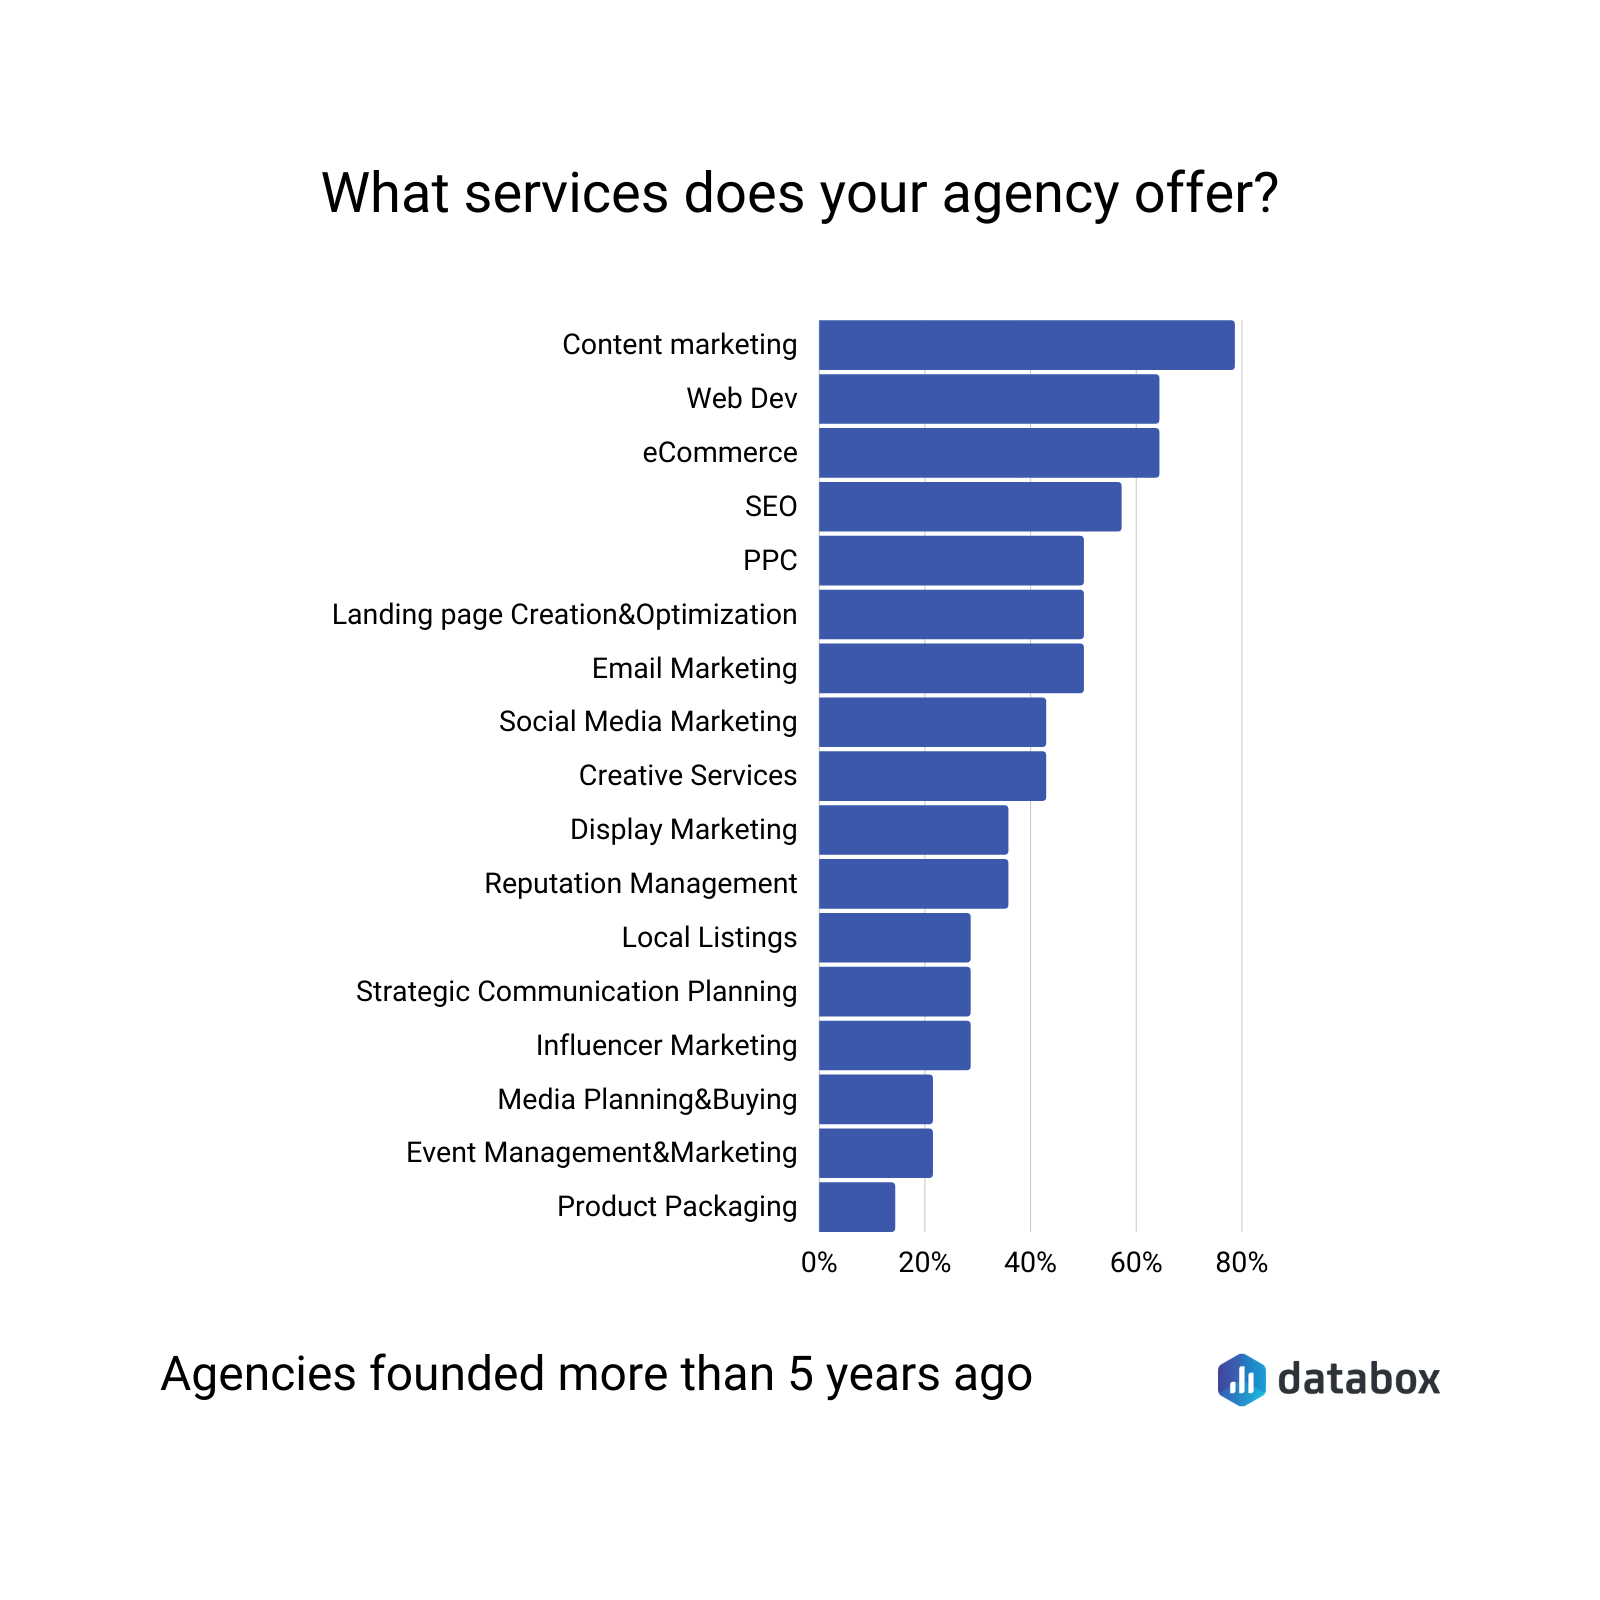 What services does your agency offer?